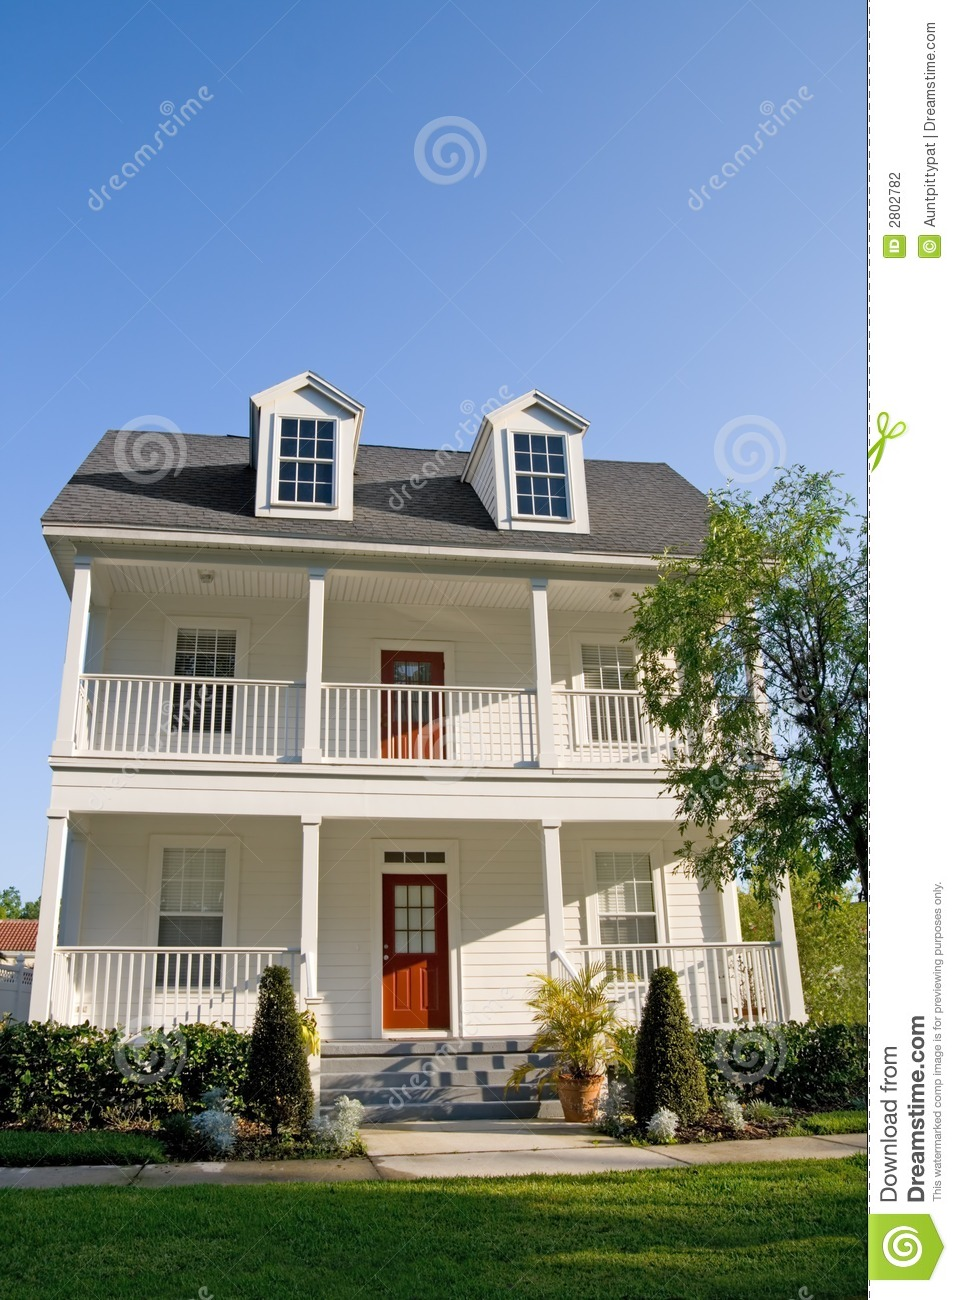 Two Story With Balconies Stock Photo Image Of Exterior